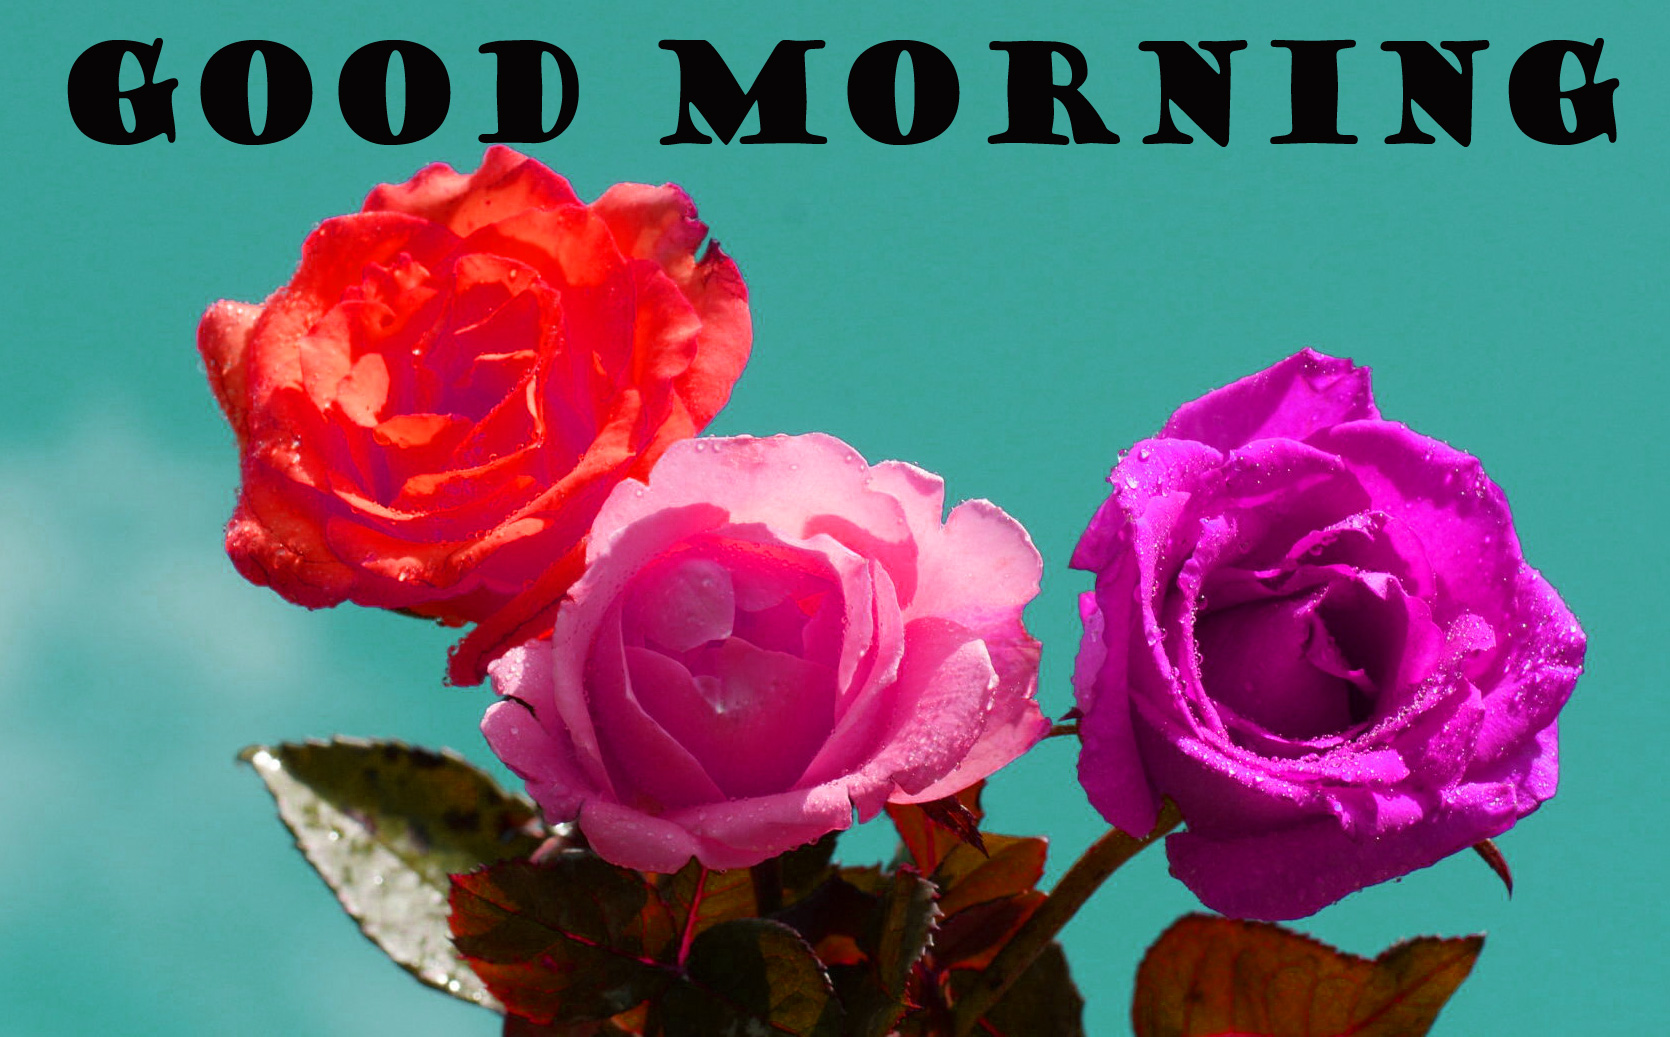 Good Morning Flowers Photo Wallpaper Pictures Free HD Download